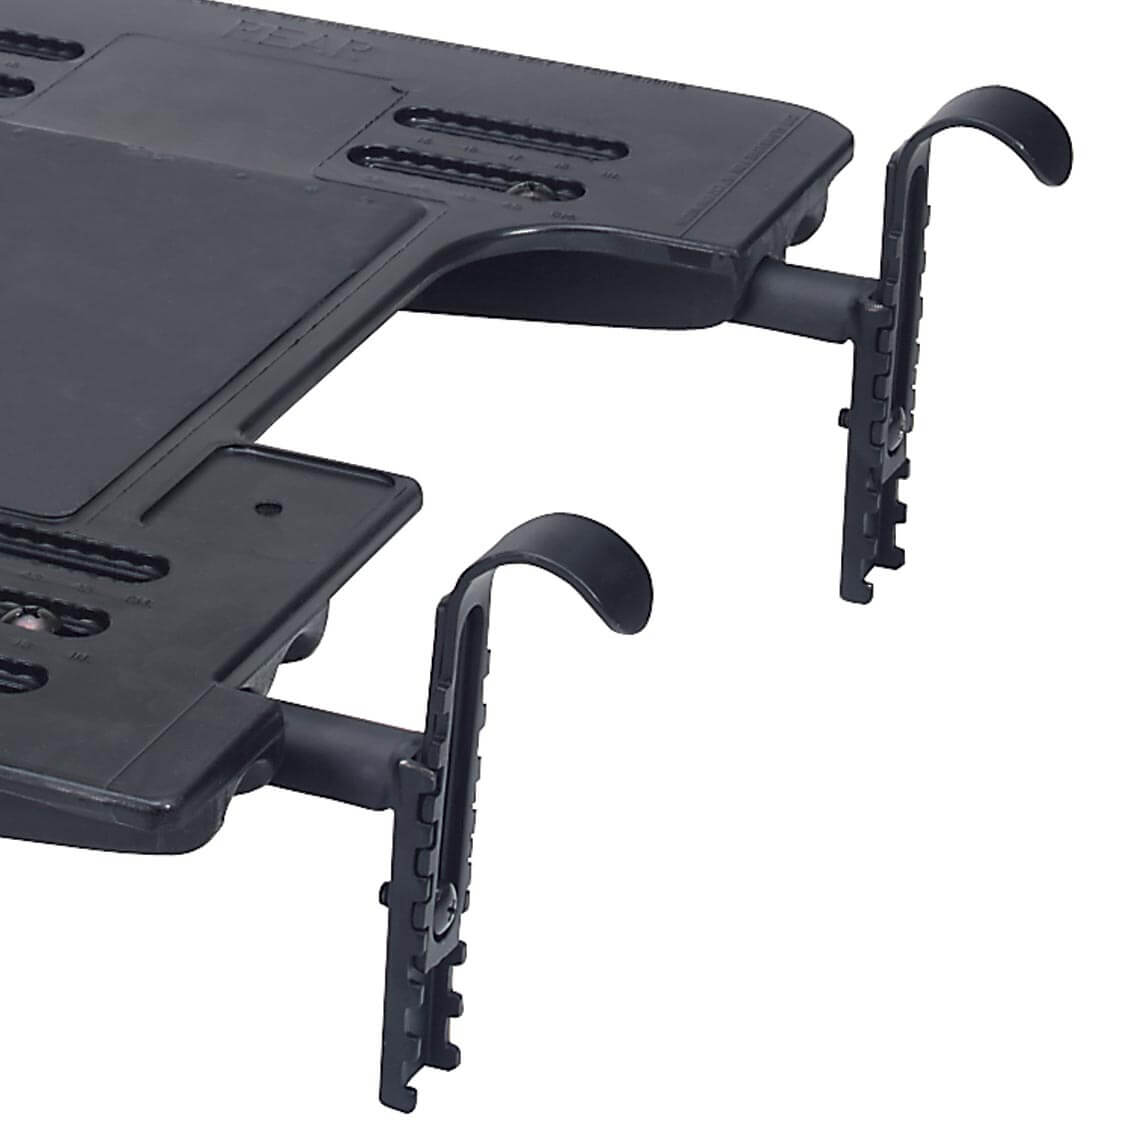 Versatile Hardware with Drop Seat Option